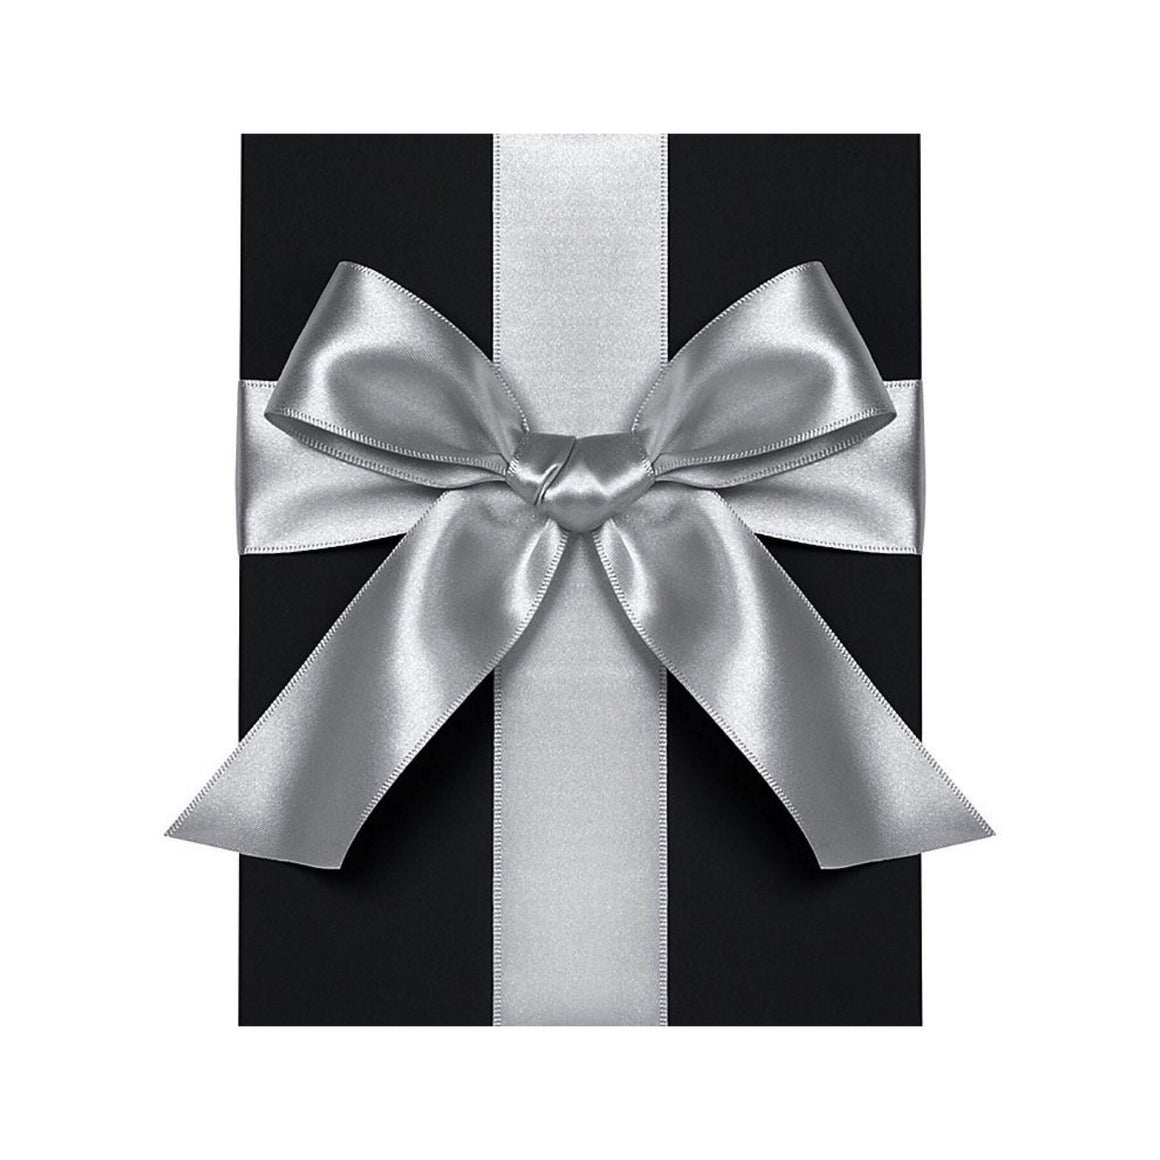 "GIFT GIVING - RIBBON 1/4"" SILVER"